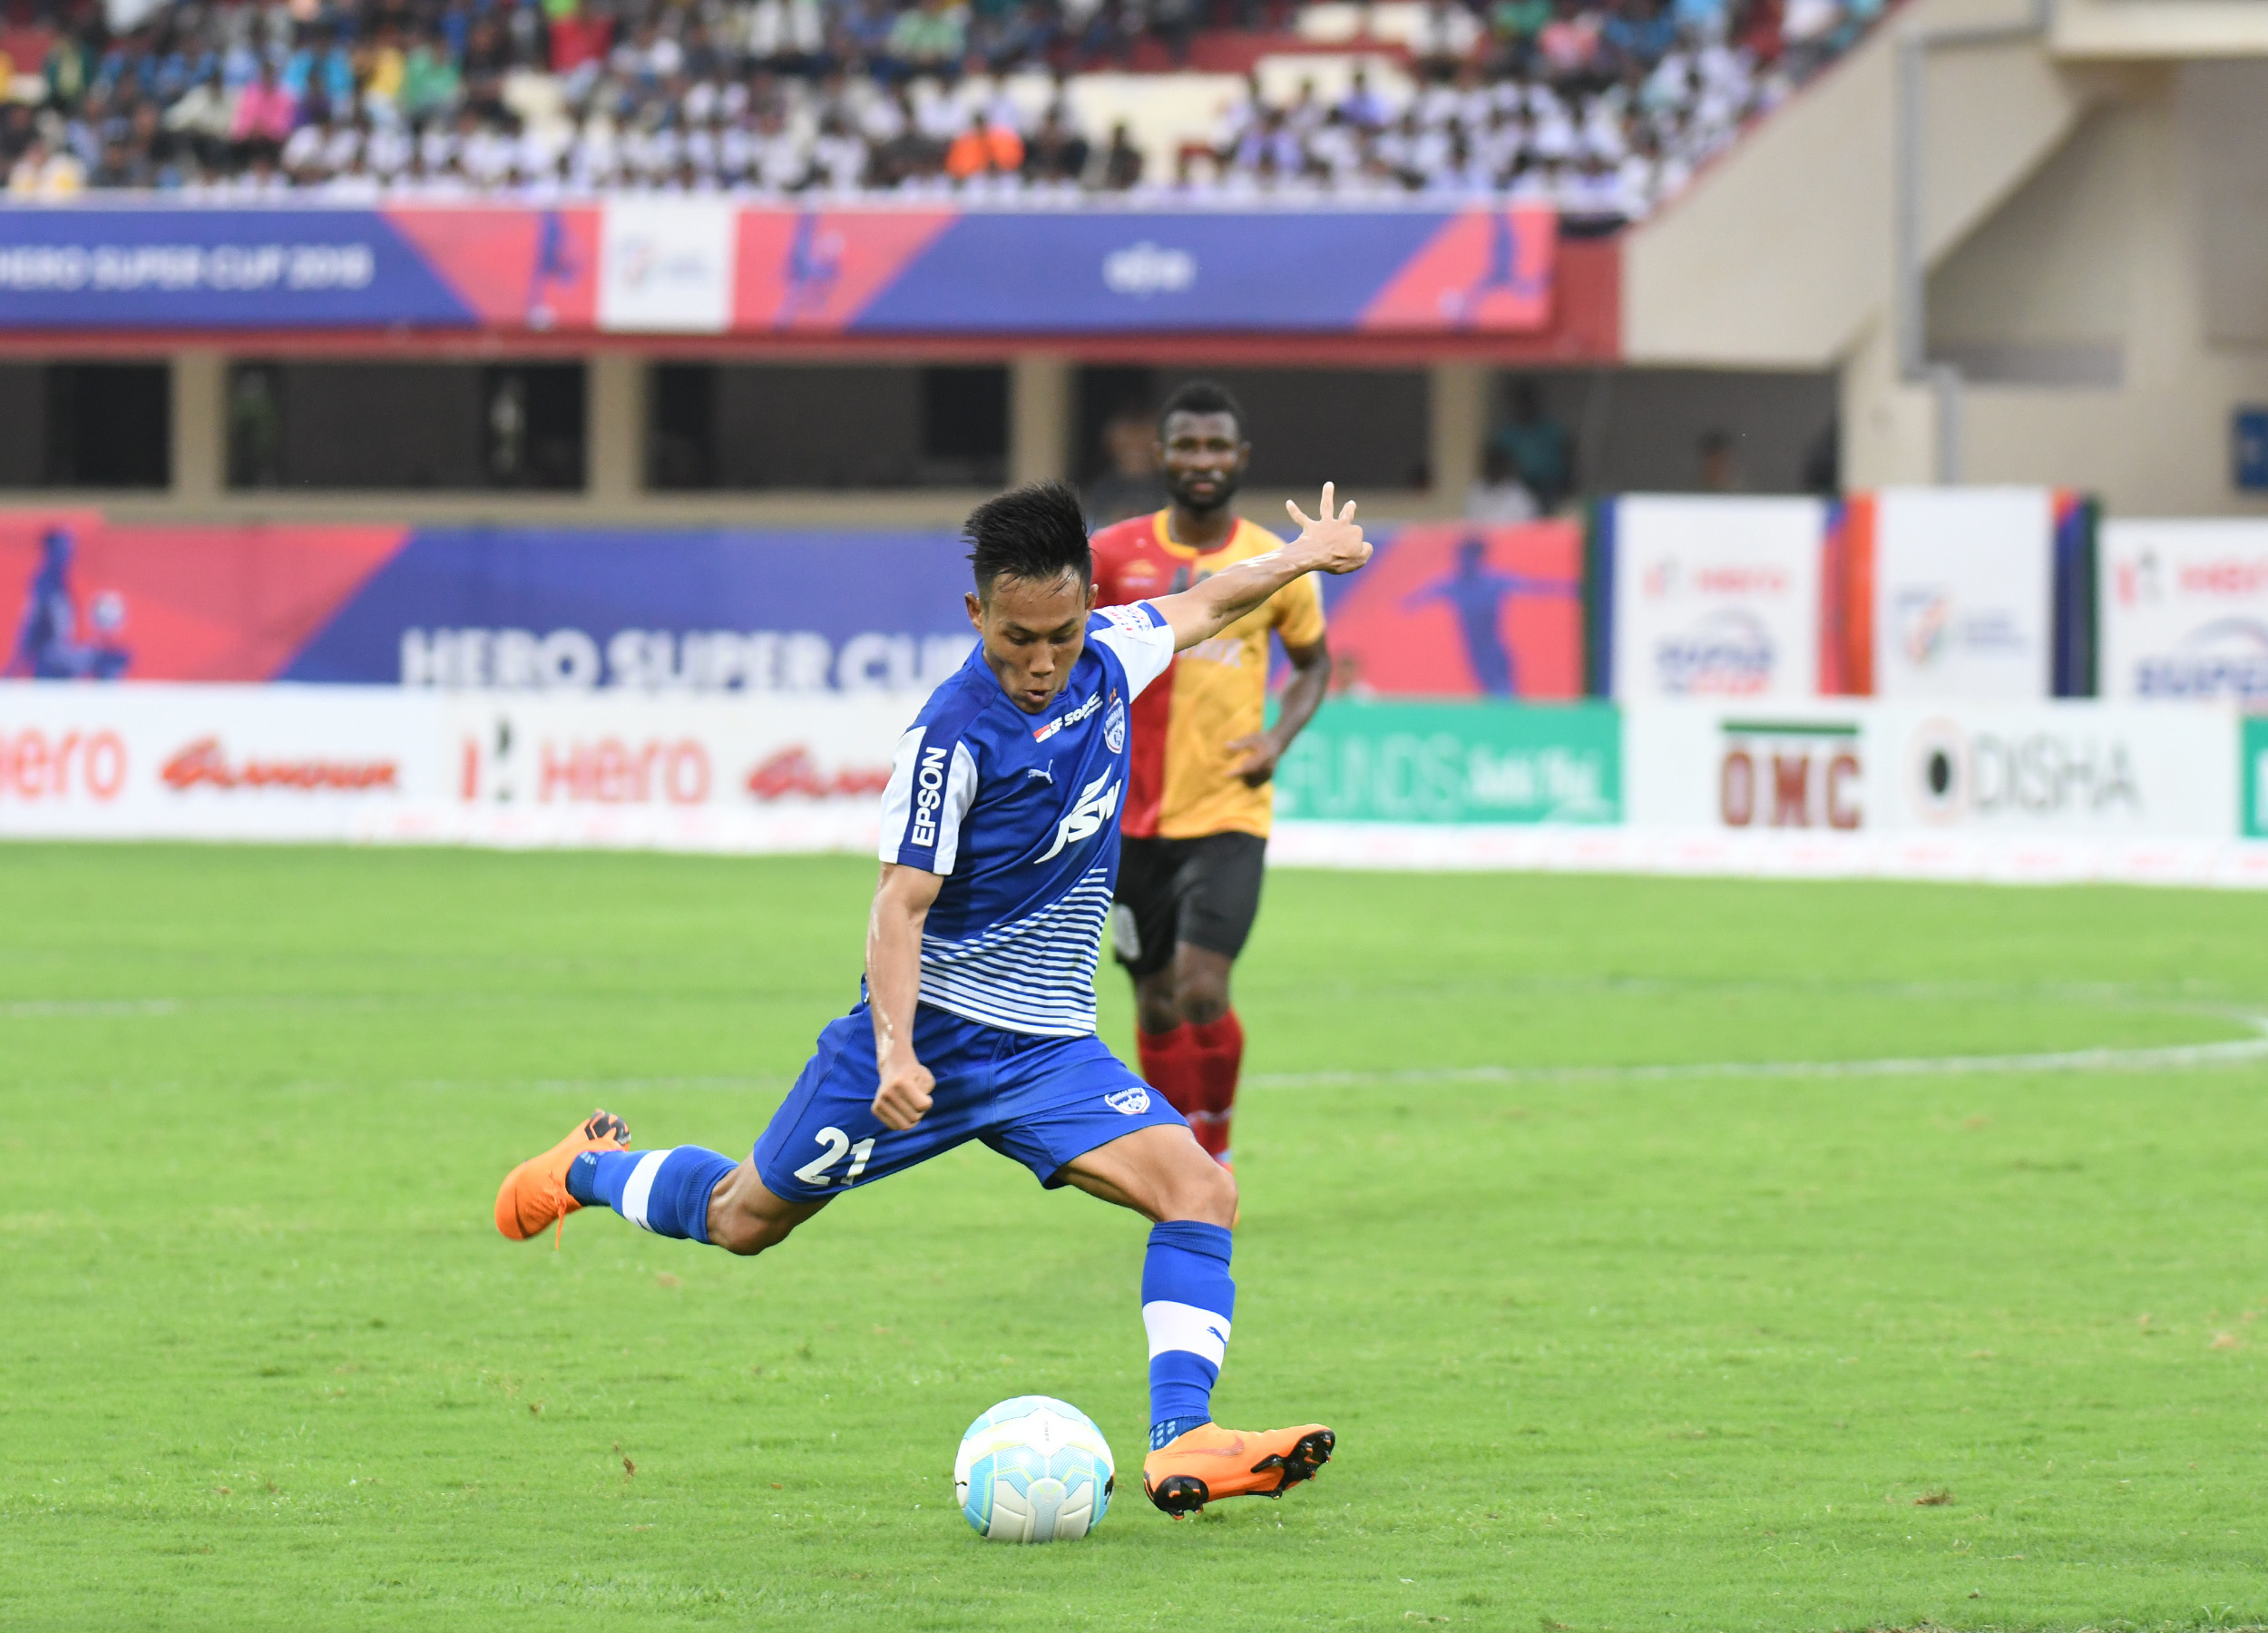 East Bengal Bengaluru FC Super Cup 2018 Final